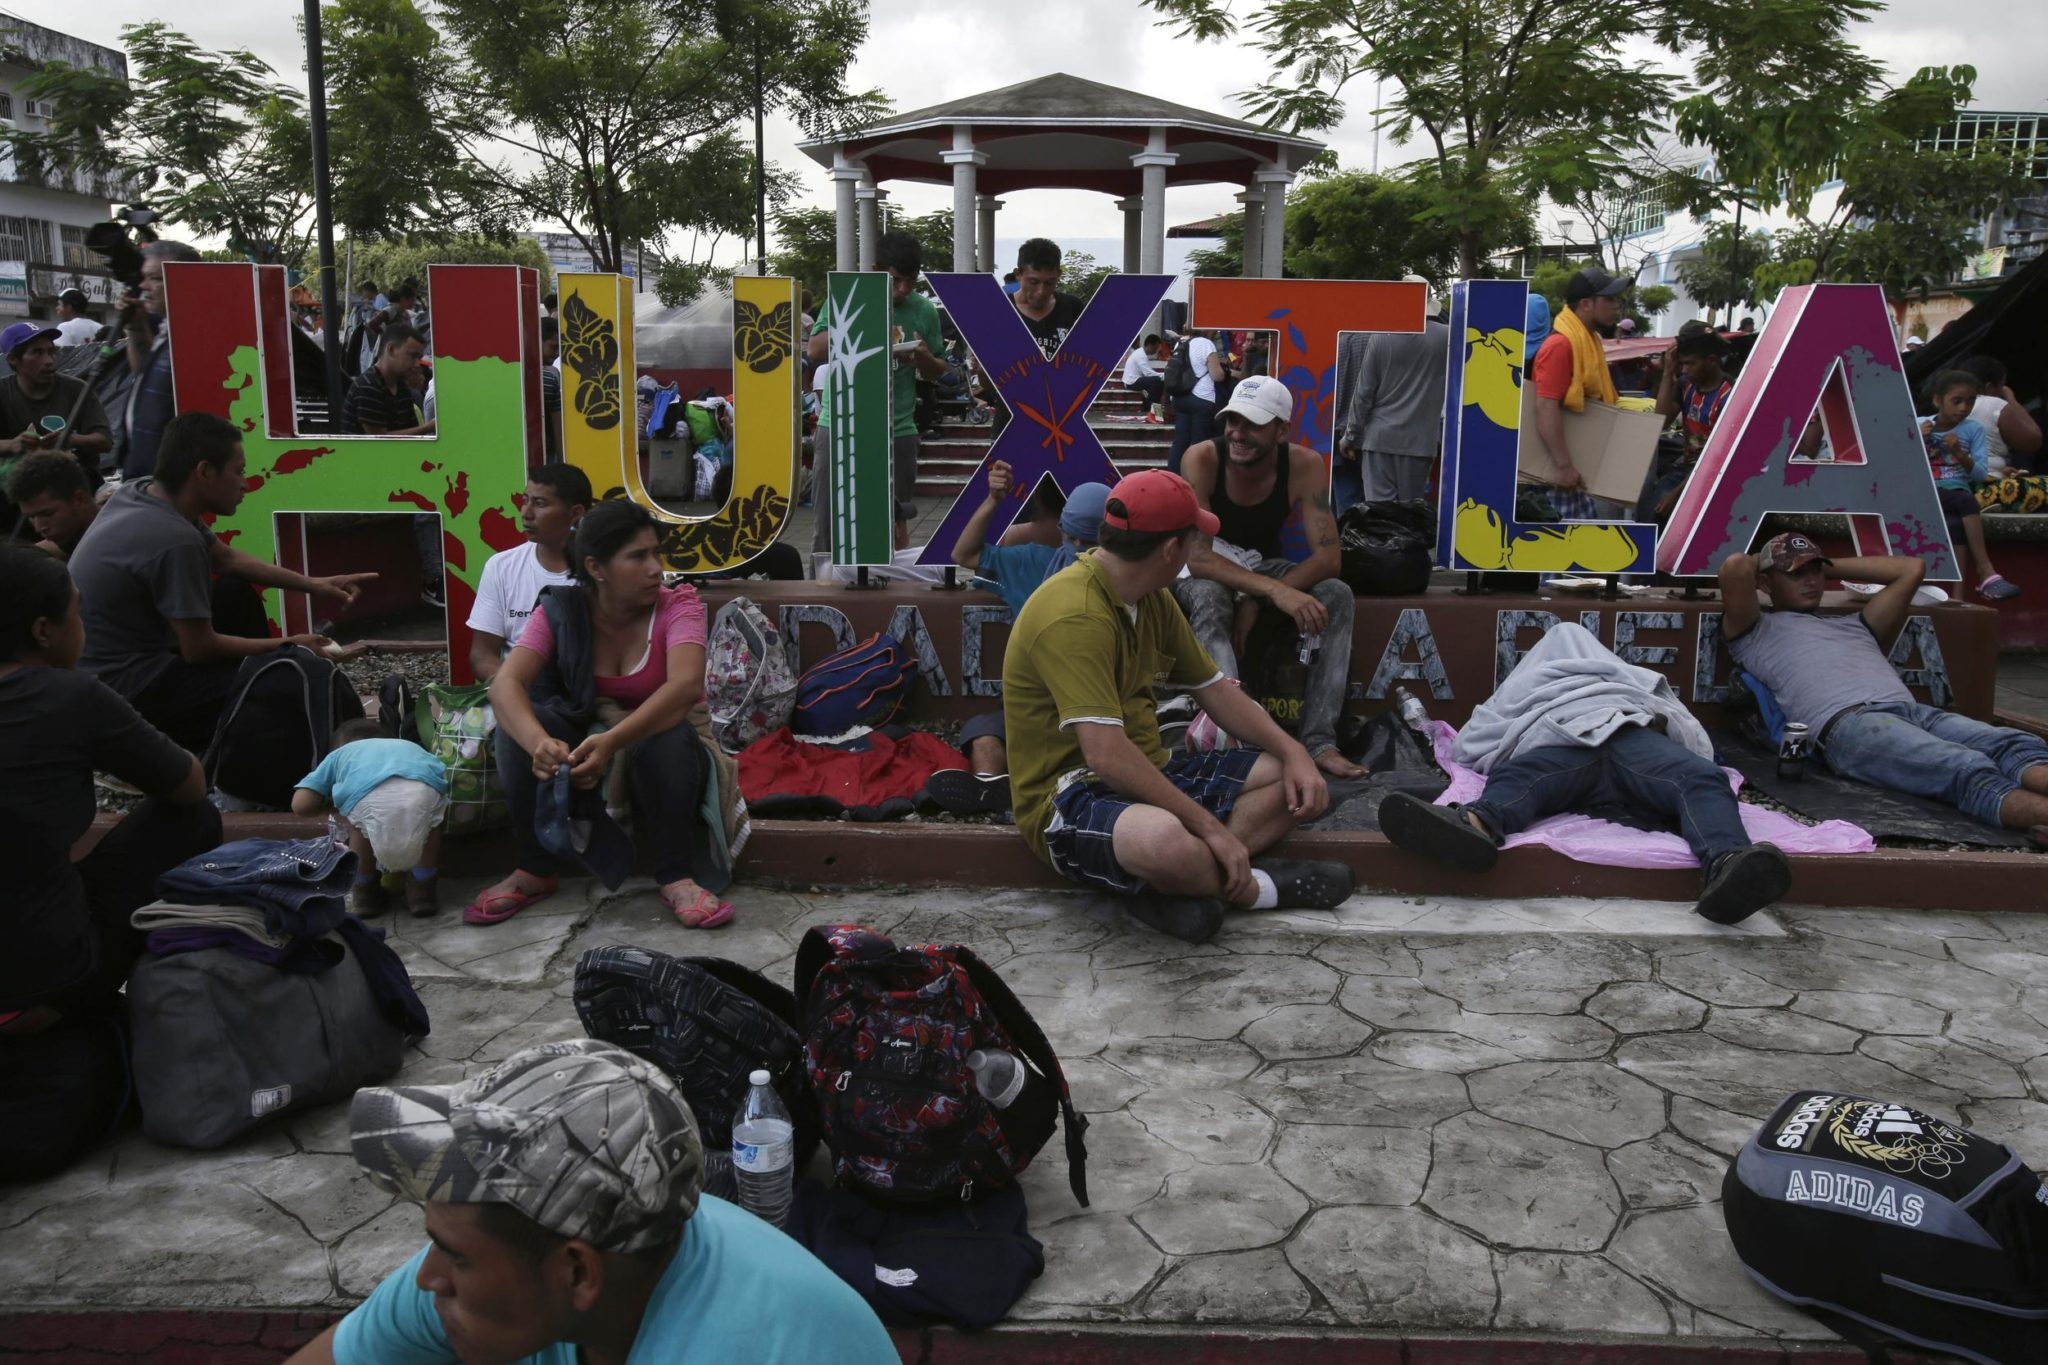 Over 7K-Strong, Migrant Caravan Pushes On; Still Far From US